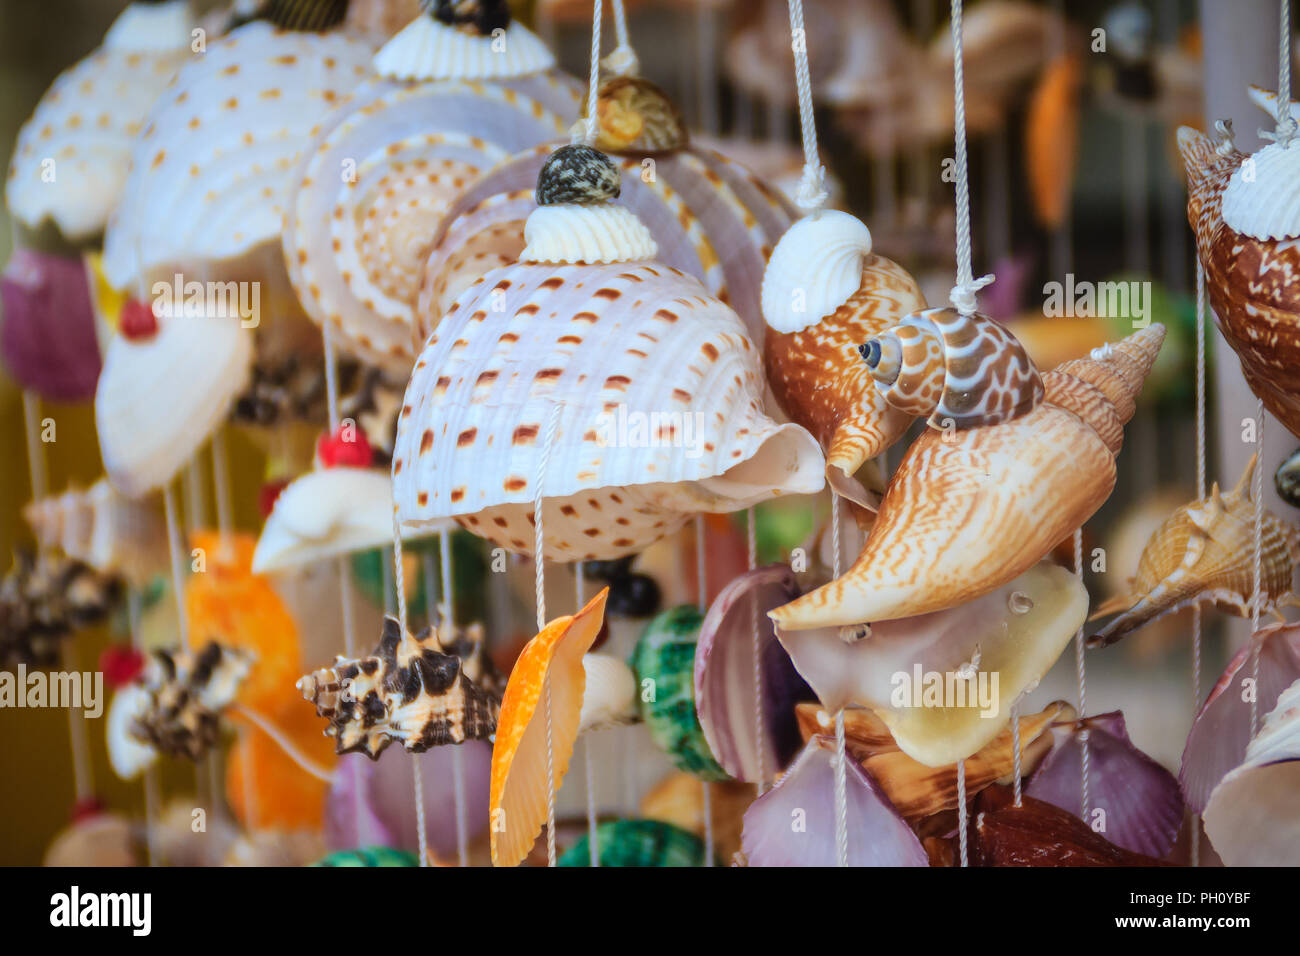 Beautiful Seashell Mobile Hanging In The Shop For Sale Handicrafts